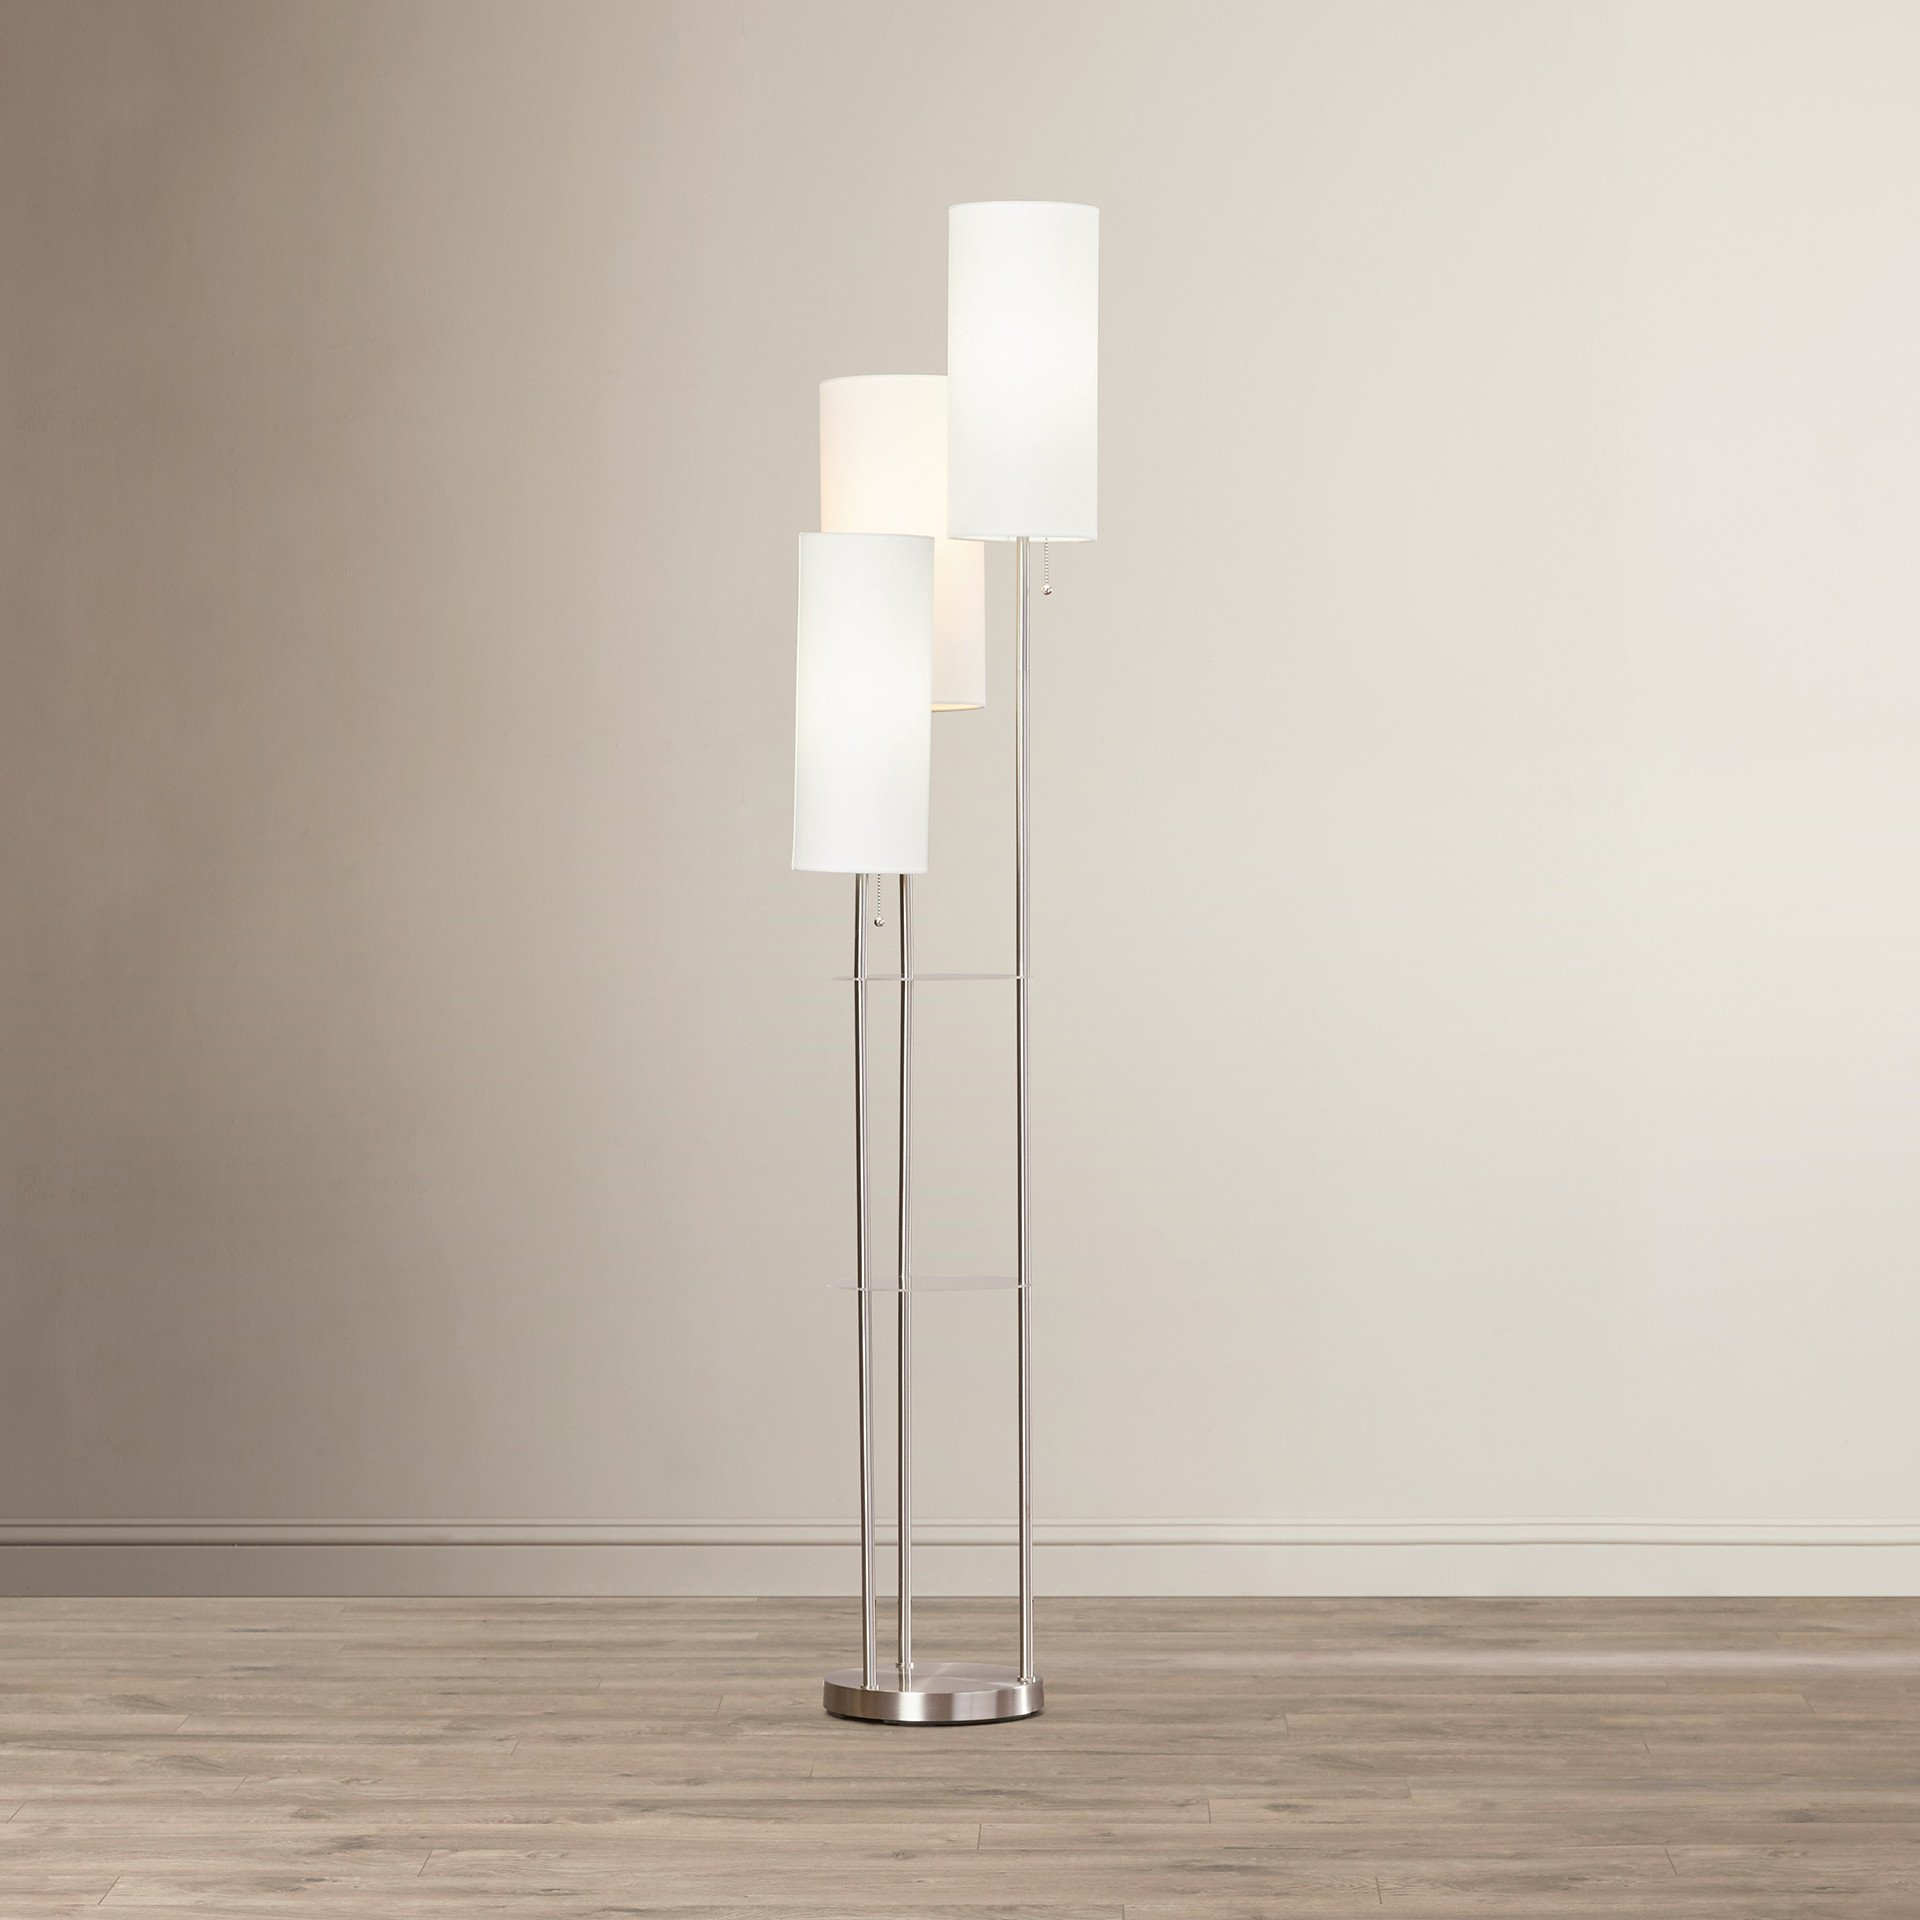 Unique European Style Floor Lamp with 2 Glass Shelves & 3 Oval Shades for Living Room - 67.75 Inch